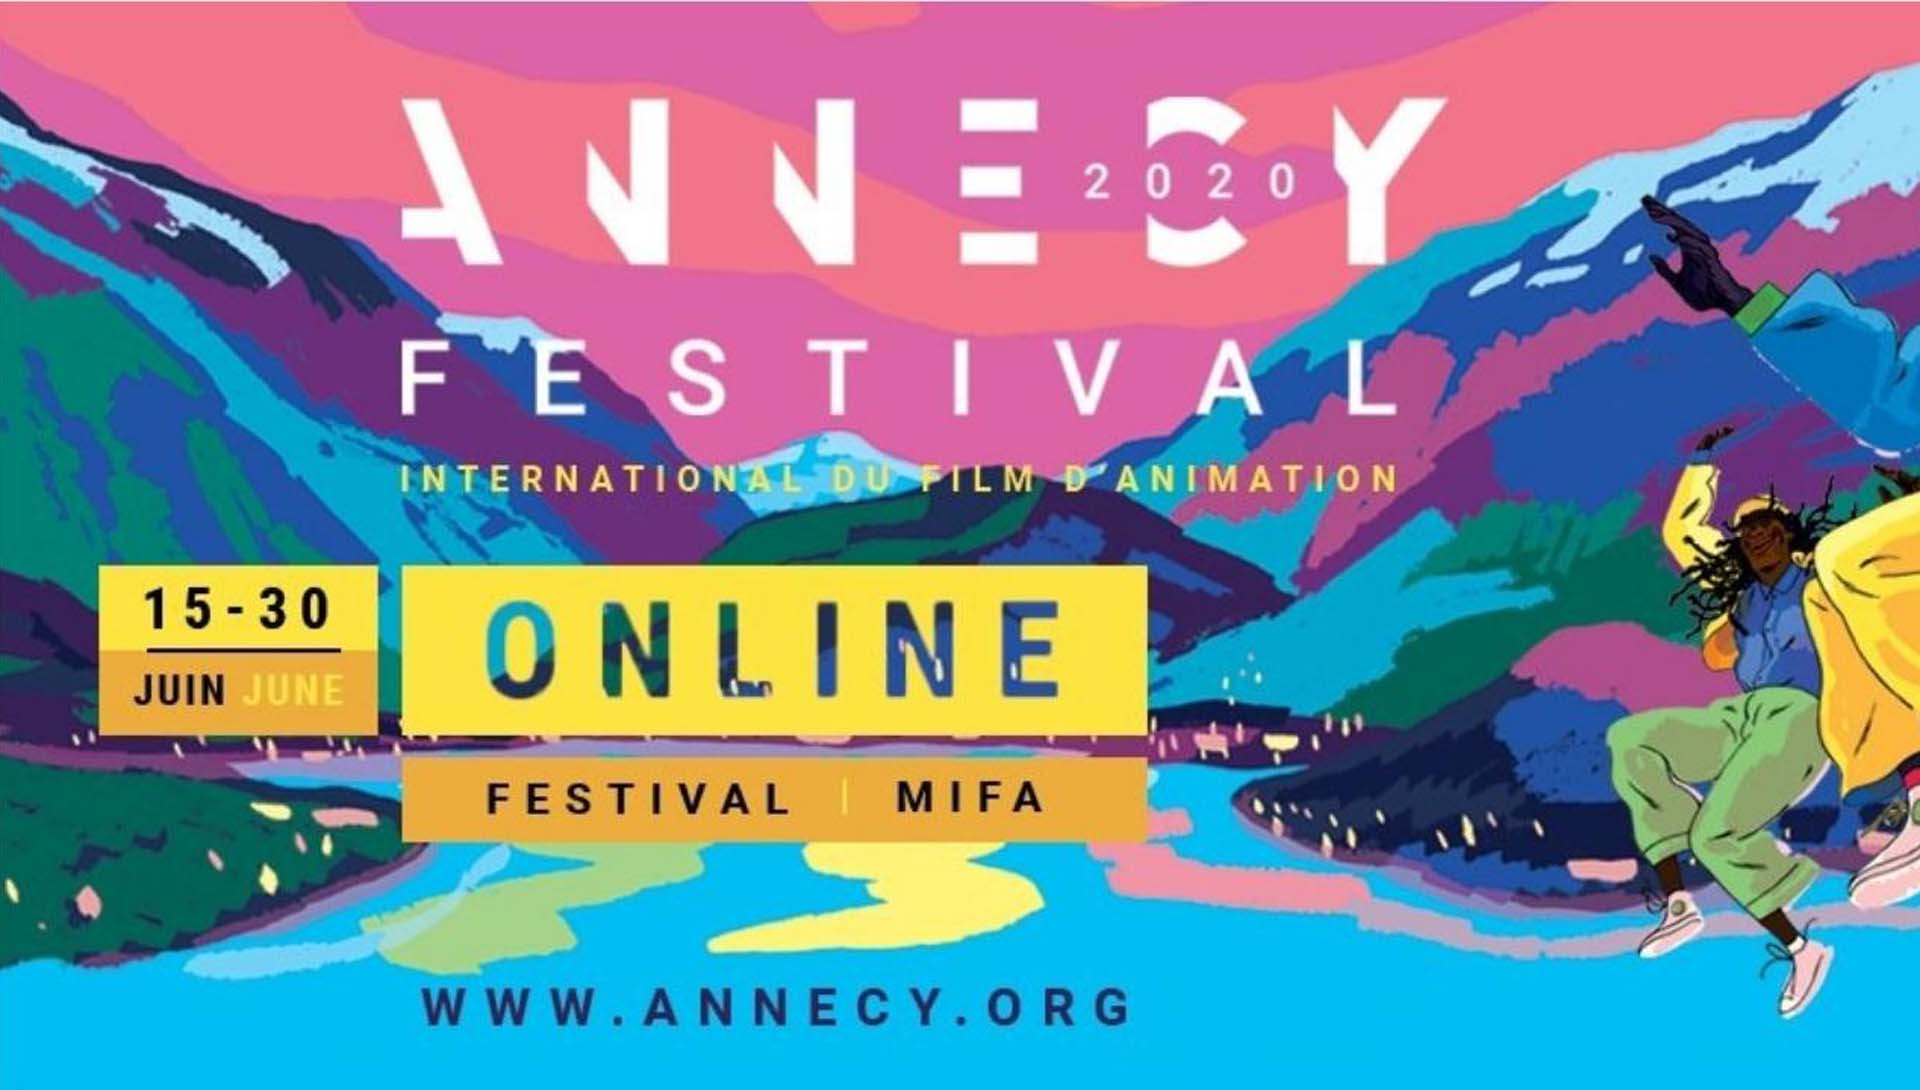 Affiche festival d'Annecy on line